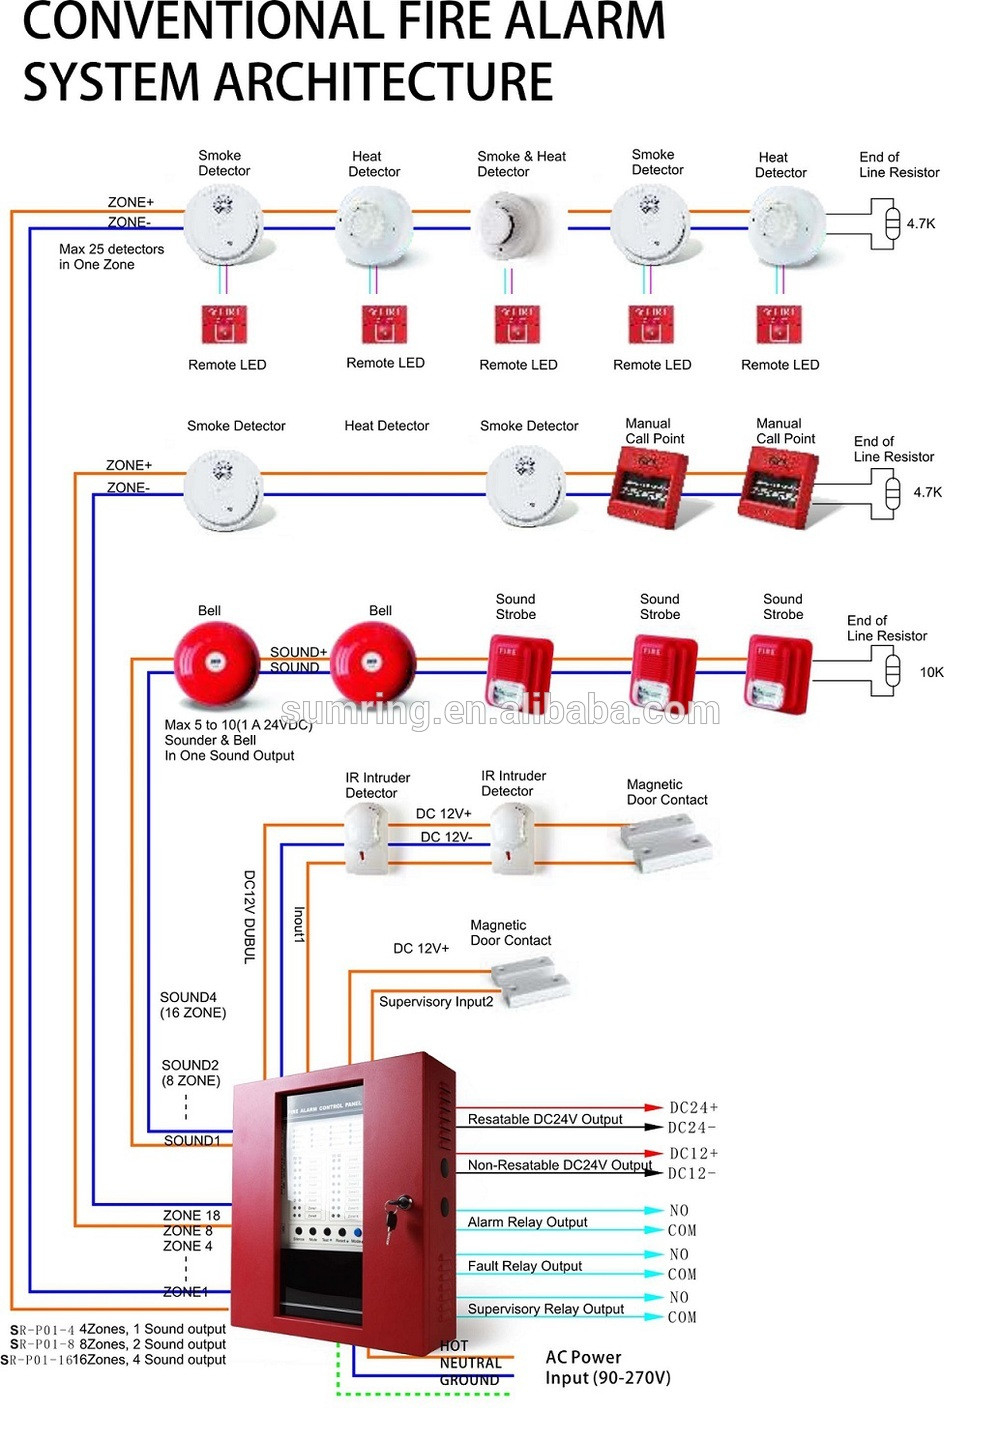 fire alarm pull station wiring diagram Download-wiring diagram of manual call point save addressable fire alarm best rh releaseganji net 8 Wire Thermostat Wiring Diagram Class A Wiring Fire Alarm 17-e